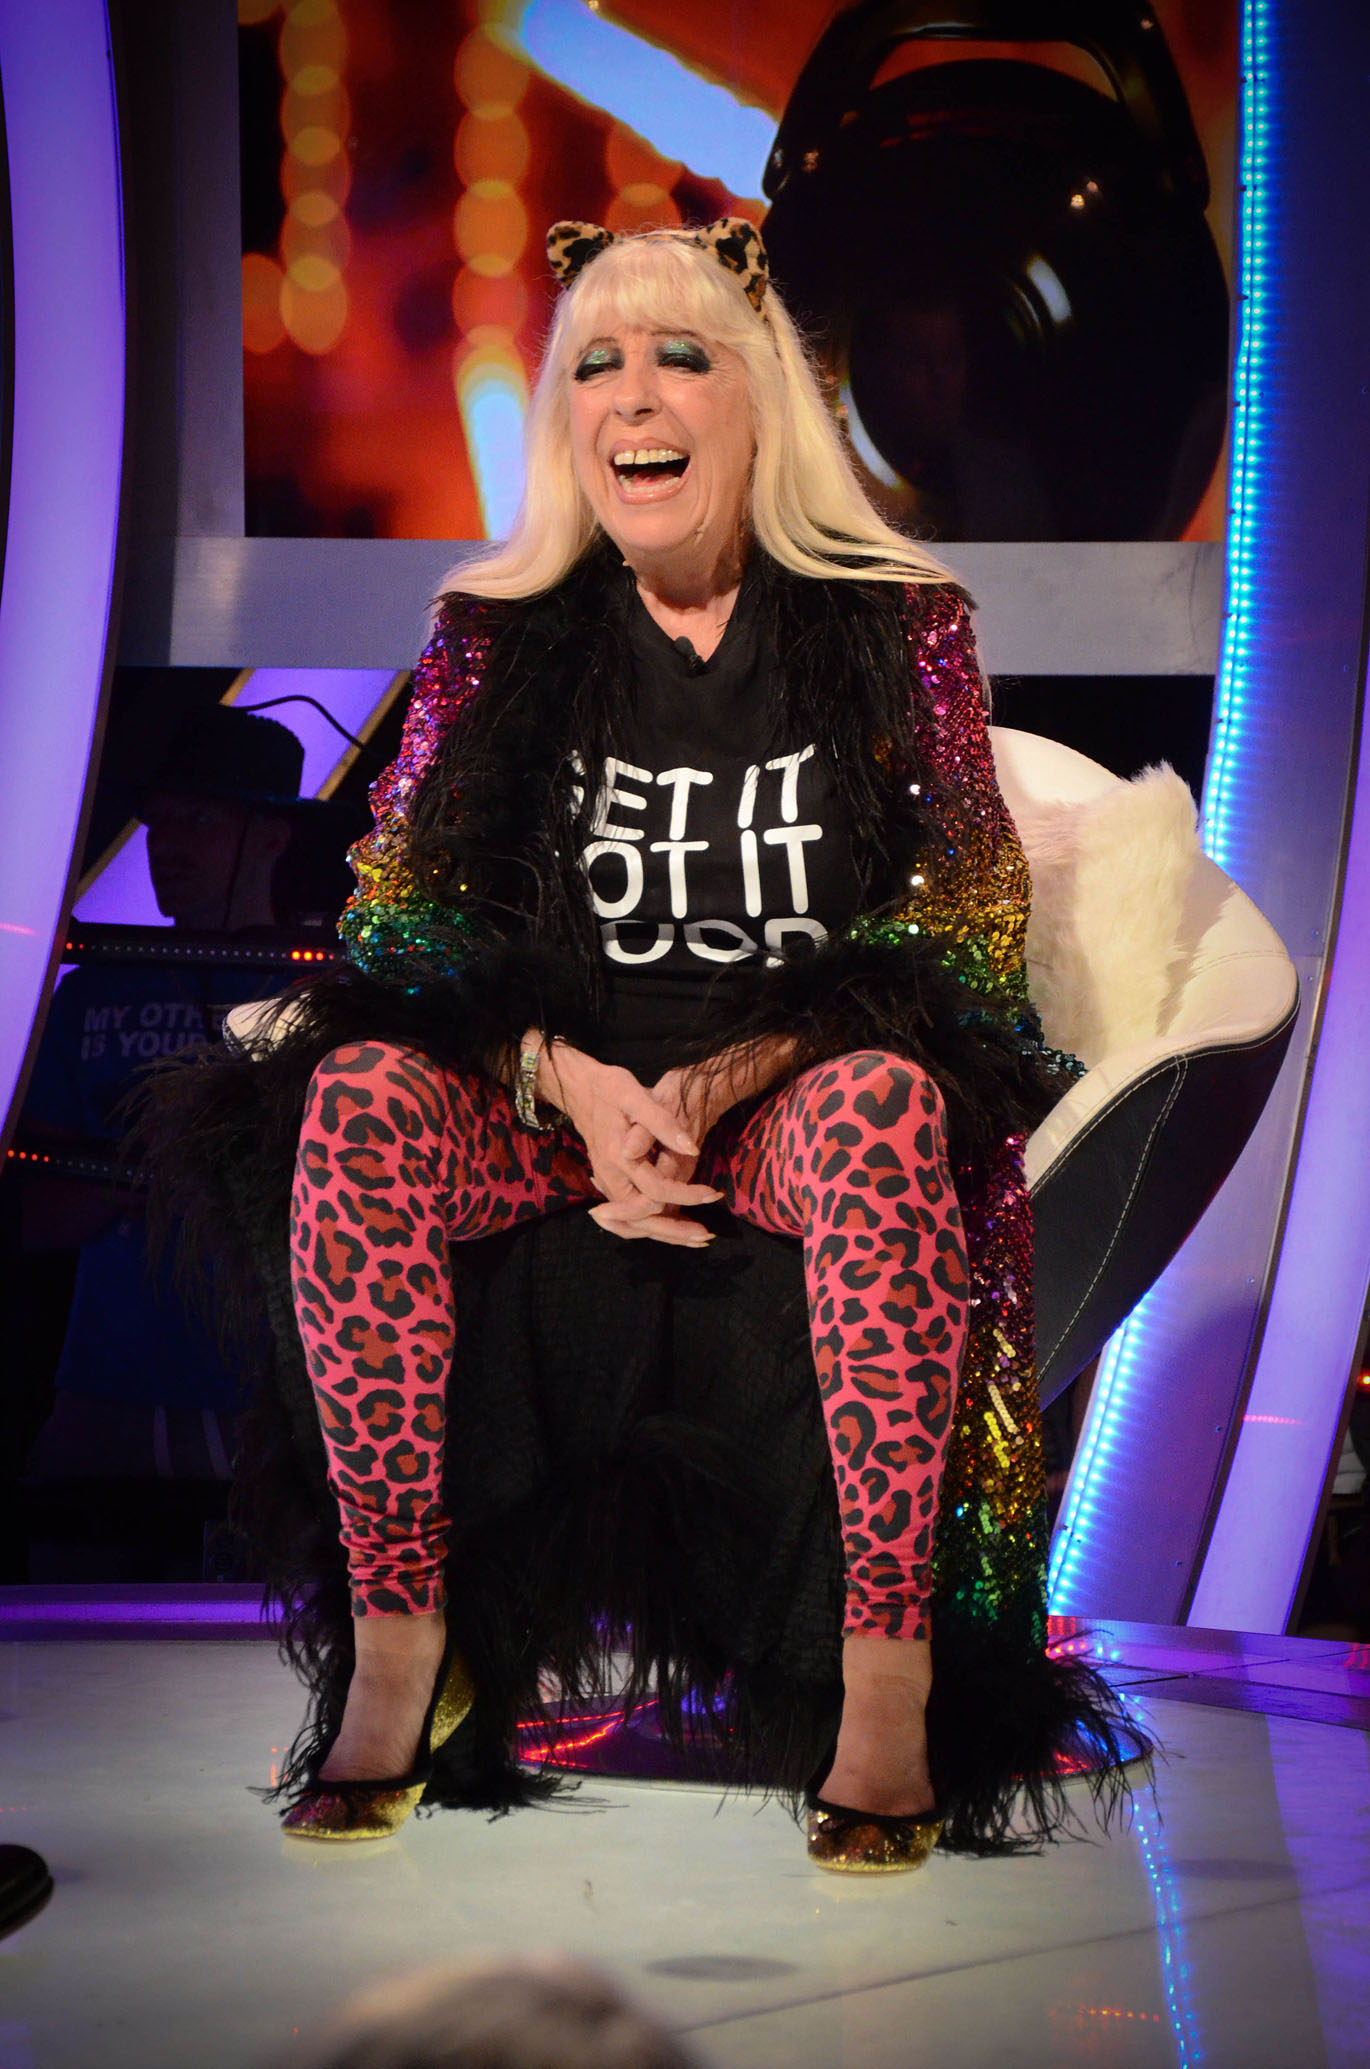 Celebrity Big Brother: Prince Lorenzo & Julie Goodyear Evicted